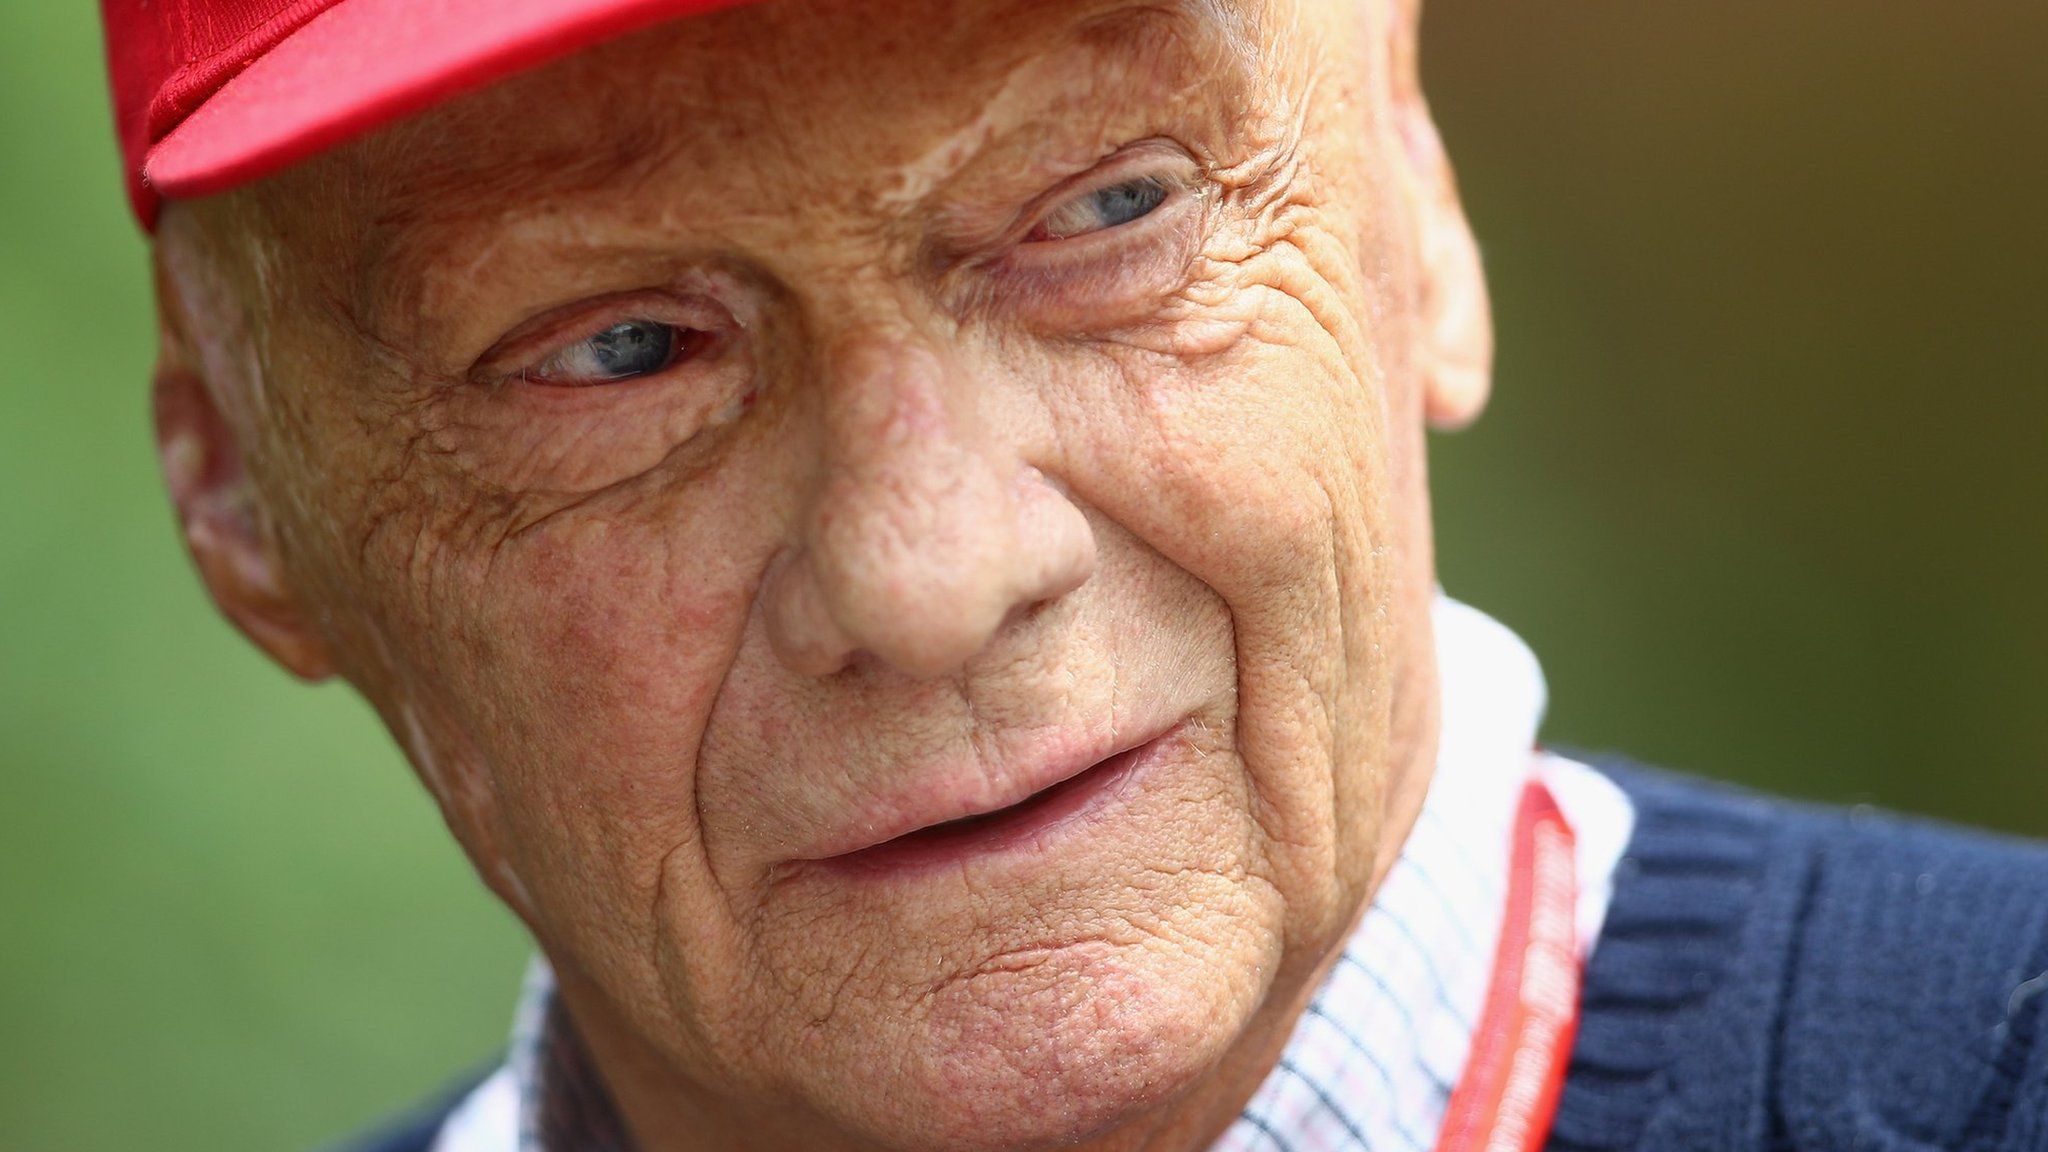 Niki Lauda obituary: 'A remarkable life lived in technicolour'